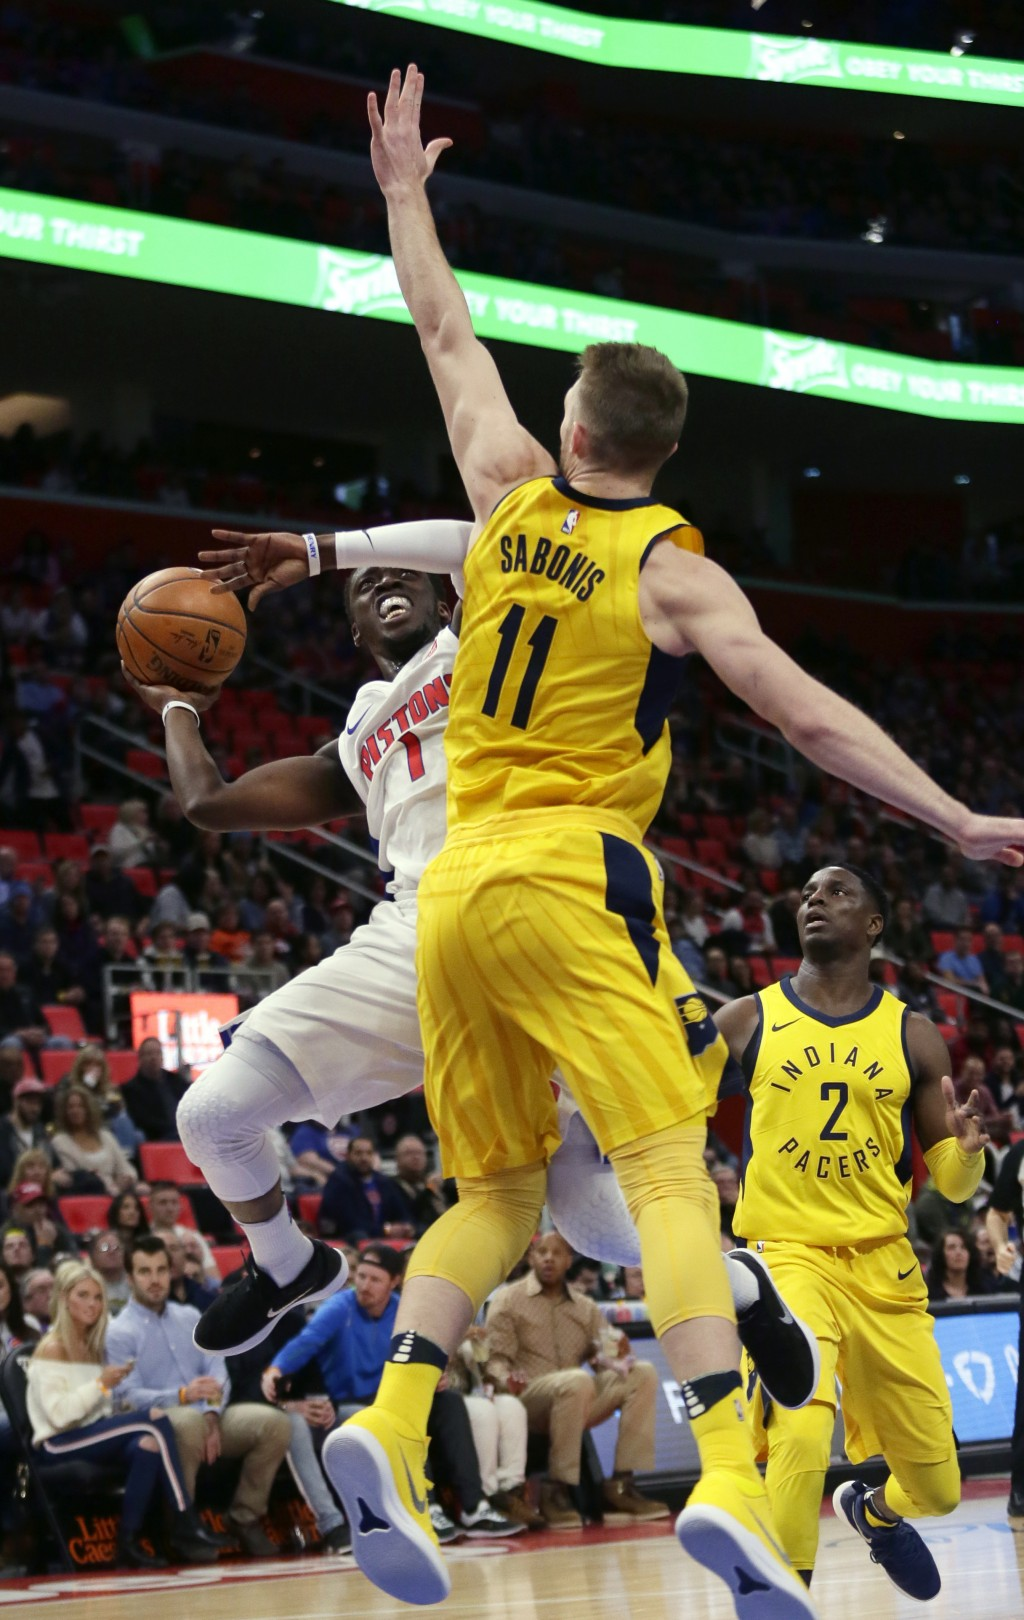 Detroit Pistons guard Reggie Jackson (1) takes a shot against Indiana Pacers center Domantas Sabonis (11) during the first half of an NBA basketball g...